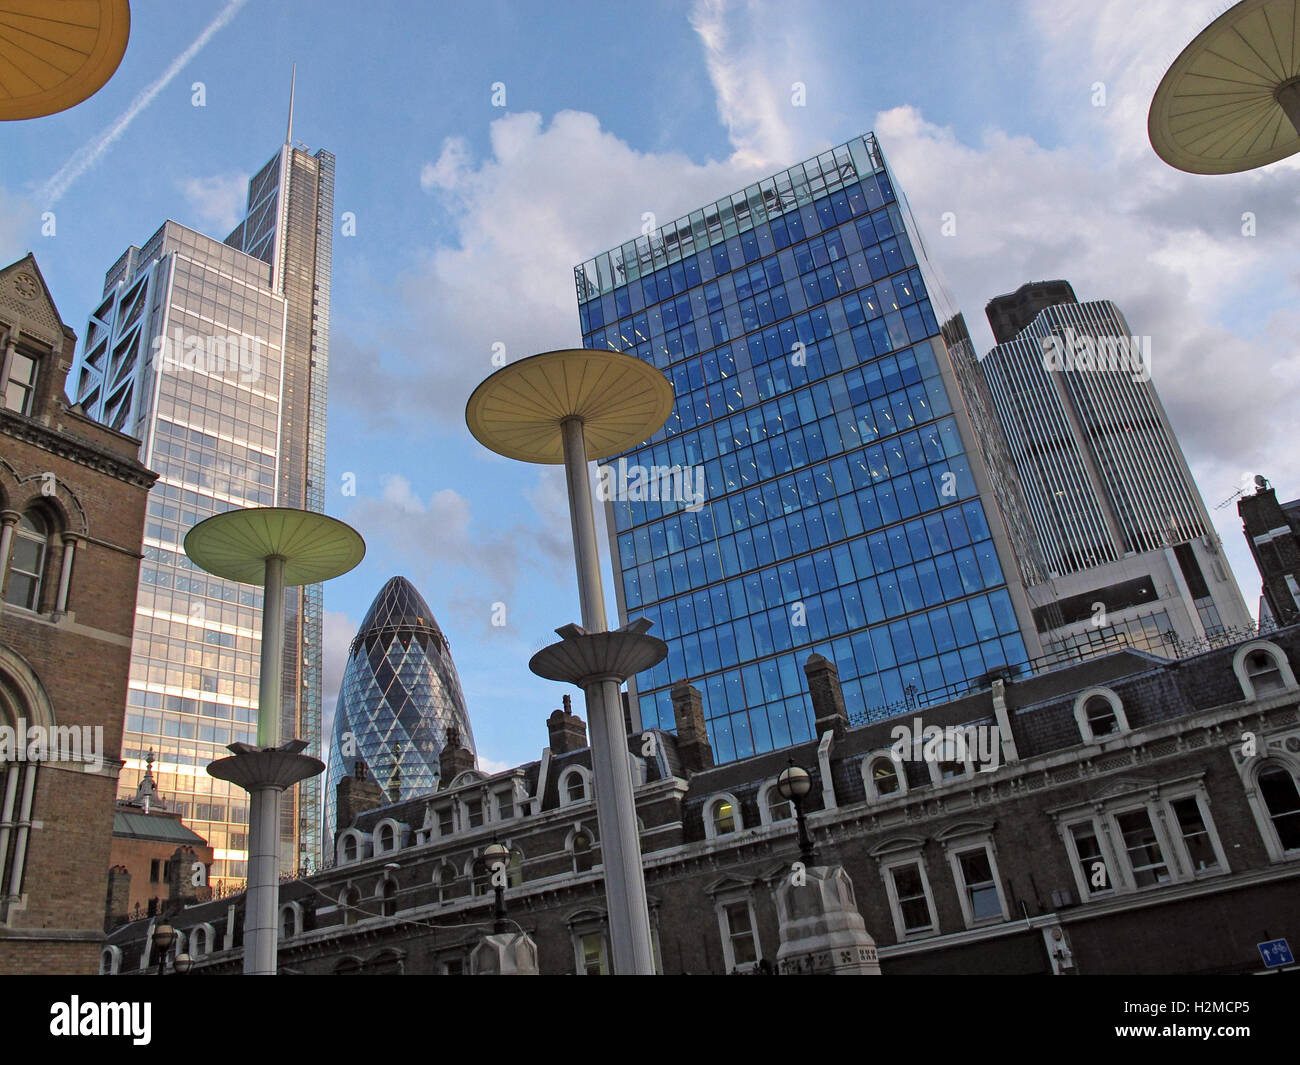 Liverpool Street Station, rail terminus, city of London, South East England, UK - Stock Image